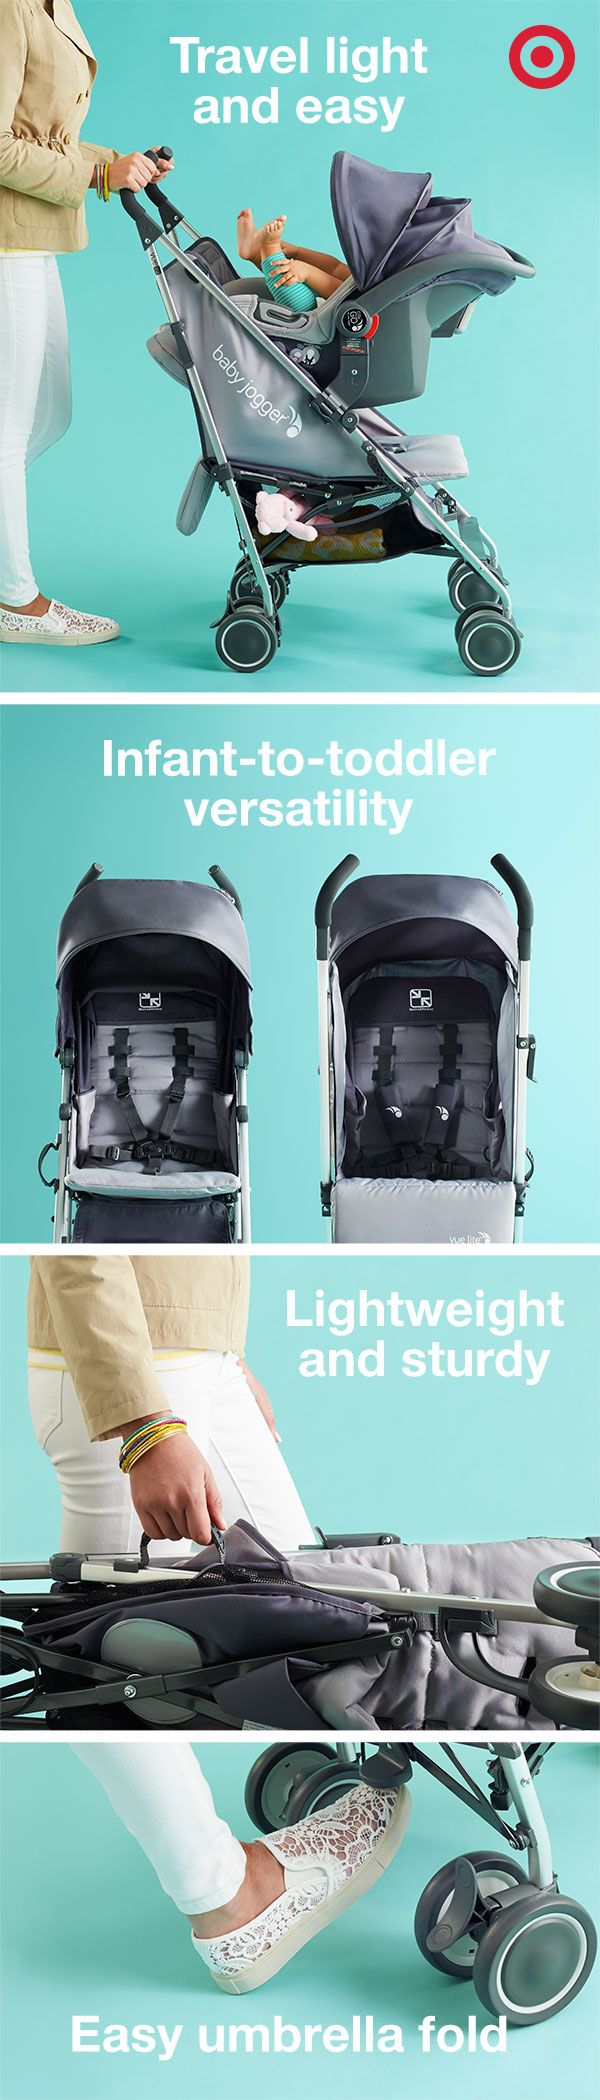 Revolutionary and sleek, the Vue Lite umbrella stroller by Baby Jogger is a Mom's Registry Pick. The innovative seat reclines and rotates to allow Baby to see you or the world around them. When you're done, the one-hand fold and carrying handle make transporting this stroller a breeze.